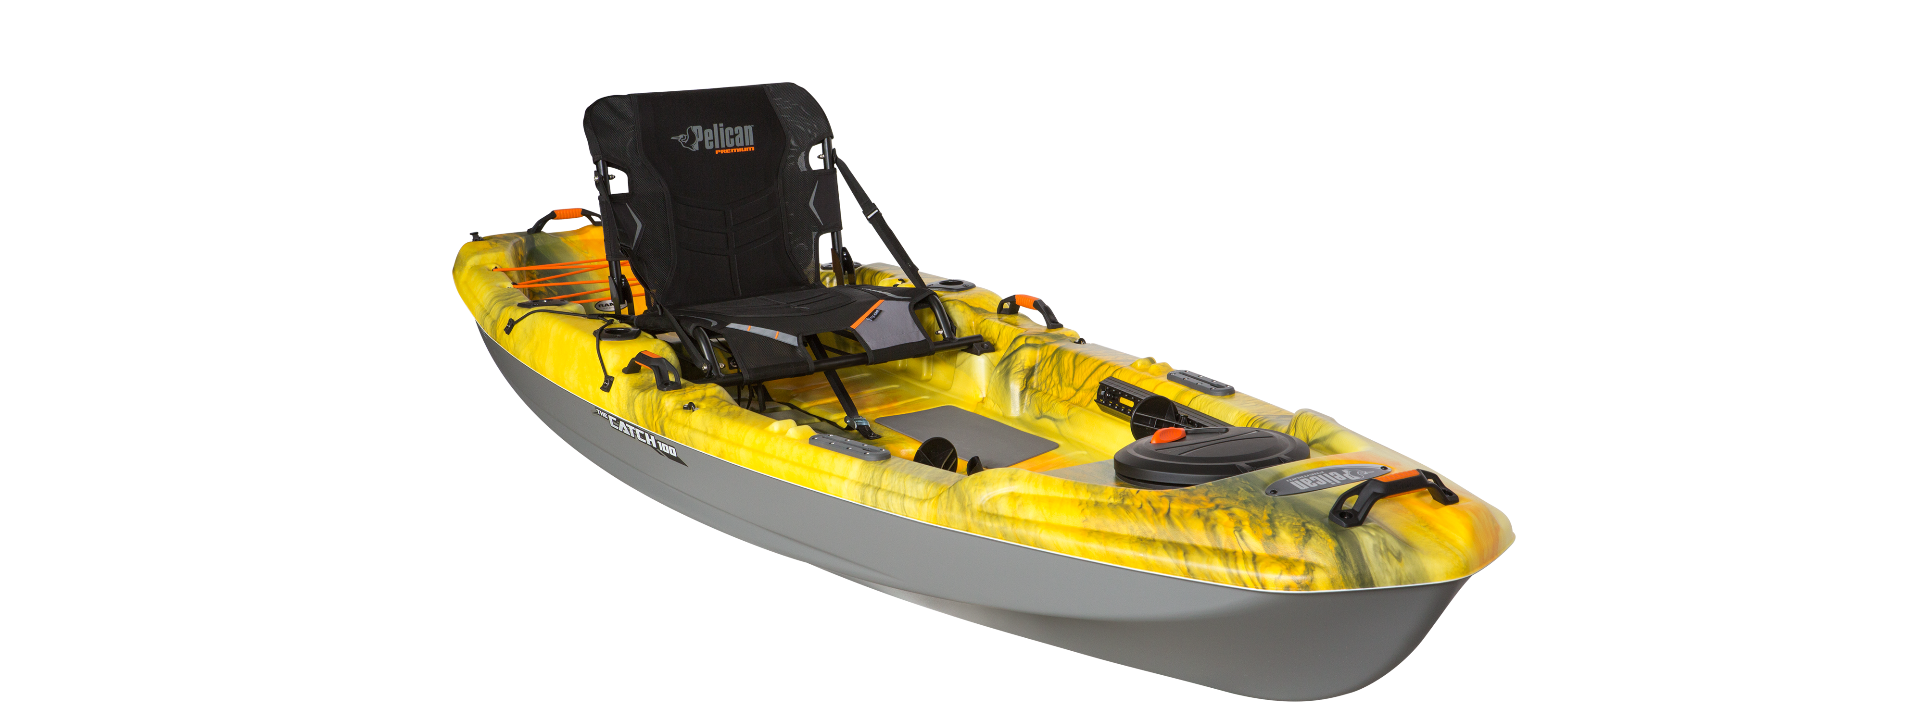 PELICAN - THE CATCH 100 SIT ON TOP FISHING KAYAK - $ 759 99 - Dover